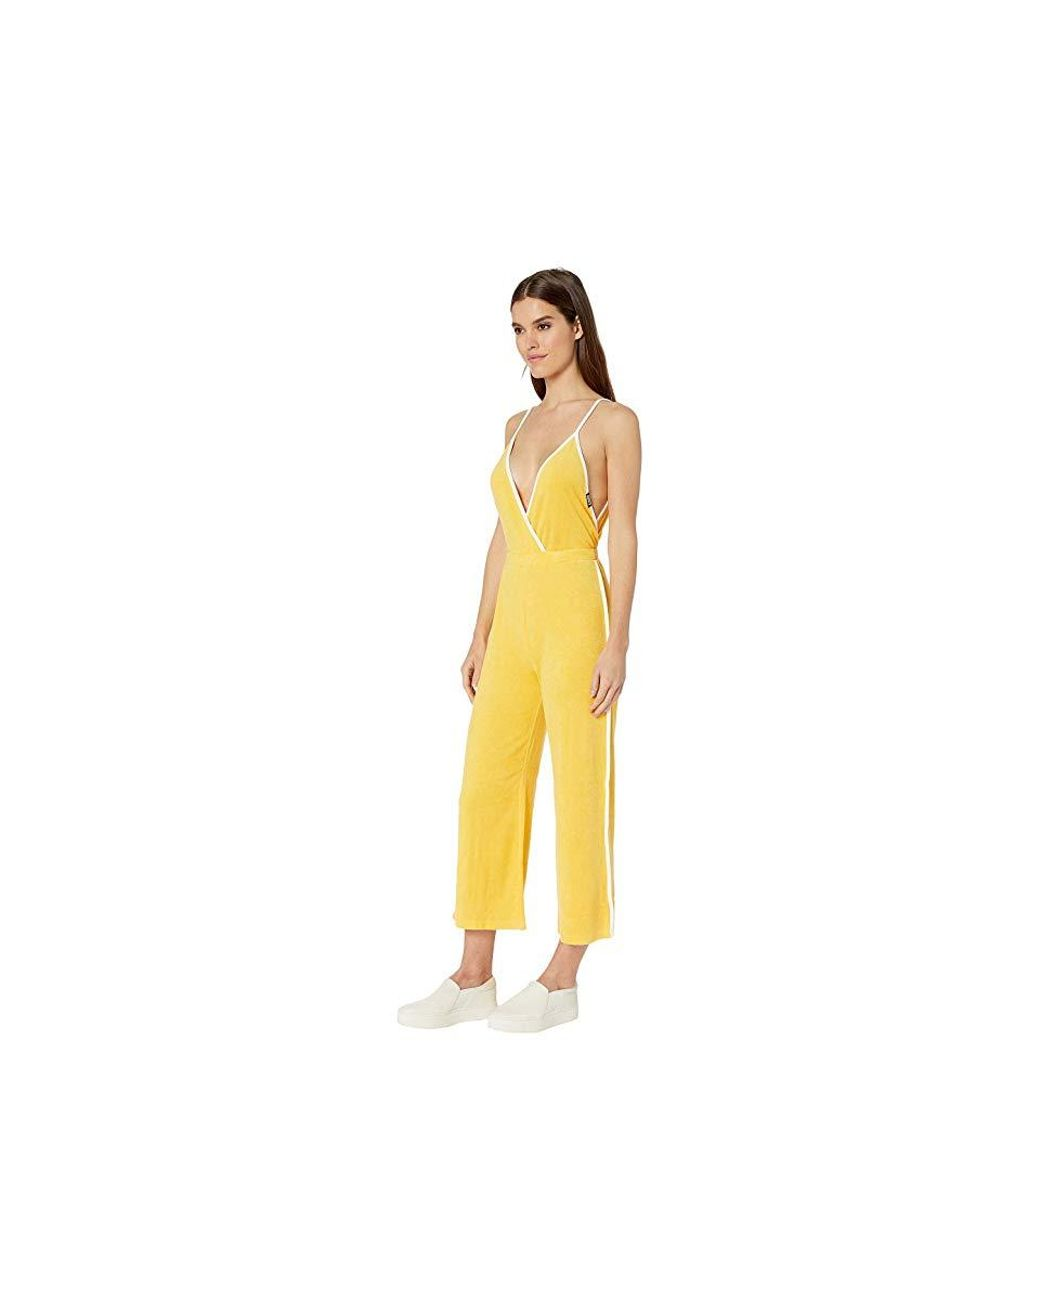 3faa2435de7ec Juicy Couture Juicy Ultra Microterry Jumpsuit (madison Yellow) Jumpsuit &  Rompers One Piece in Yellow - Save 29% - Lyst